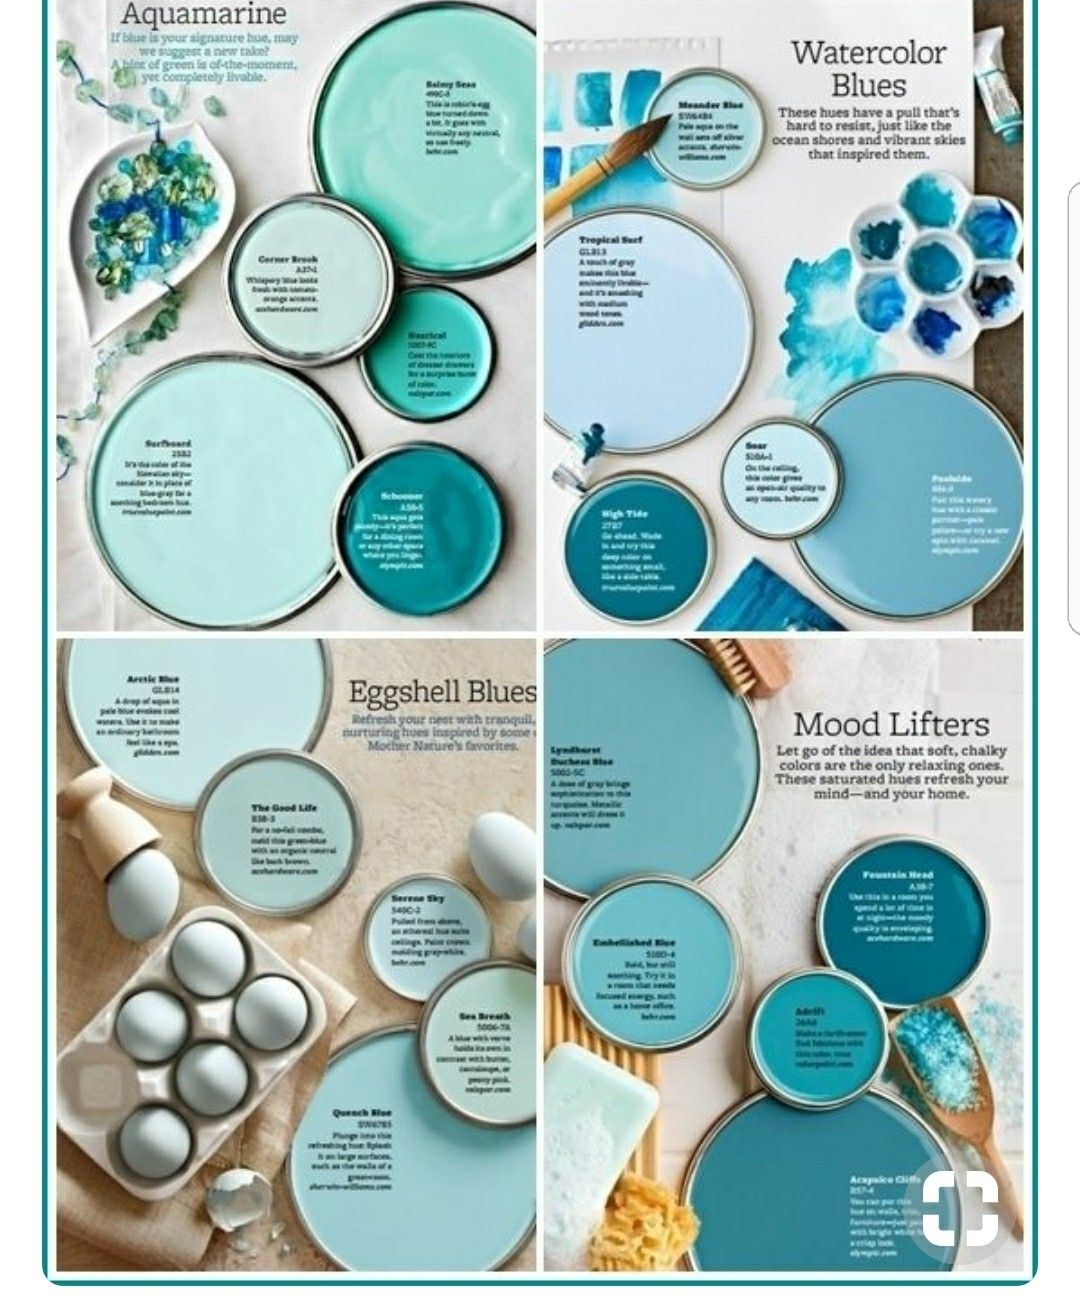 Aquamarine Paint Colors Via Bhg Com: Blue Paint Colors